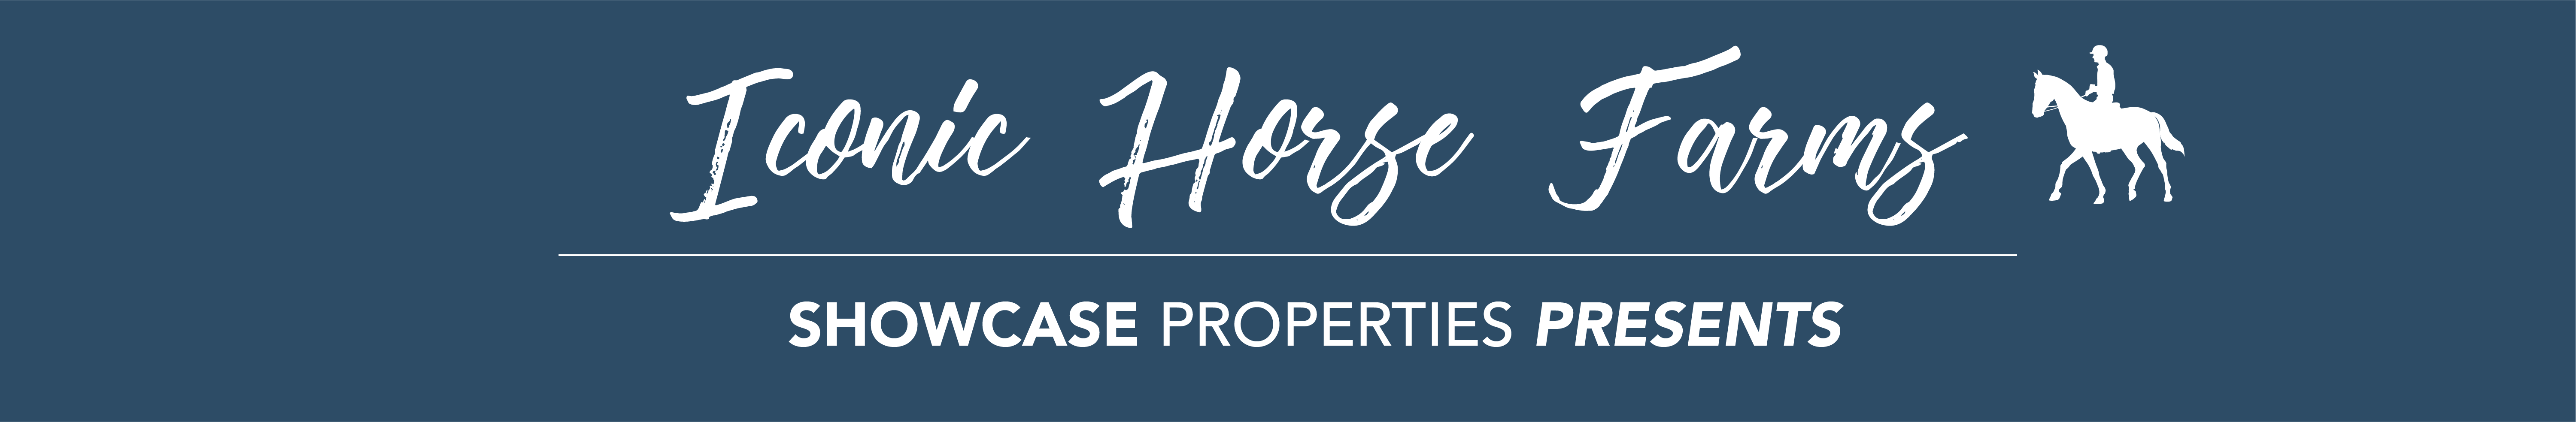 Showcase Properties Presents: Iconic Horse Farms